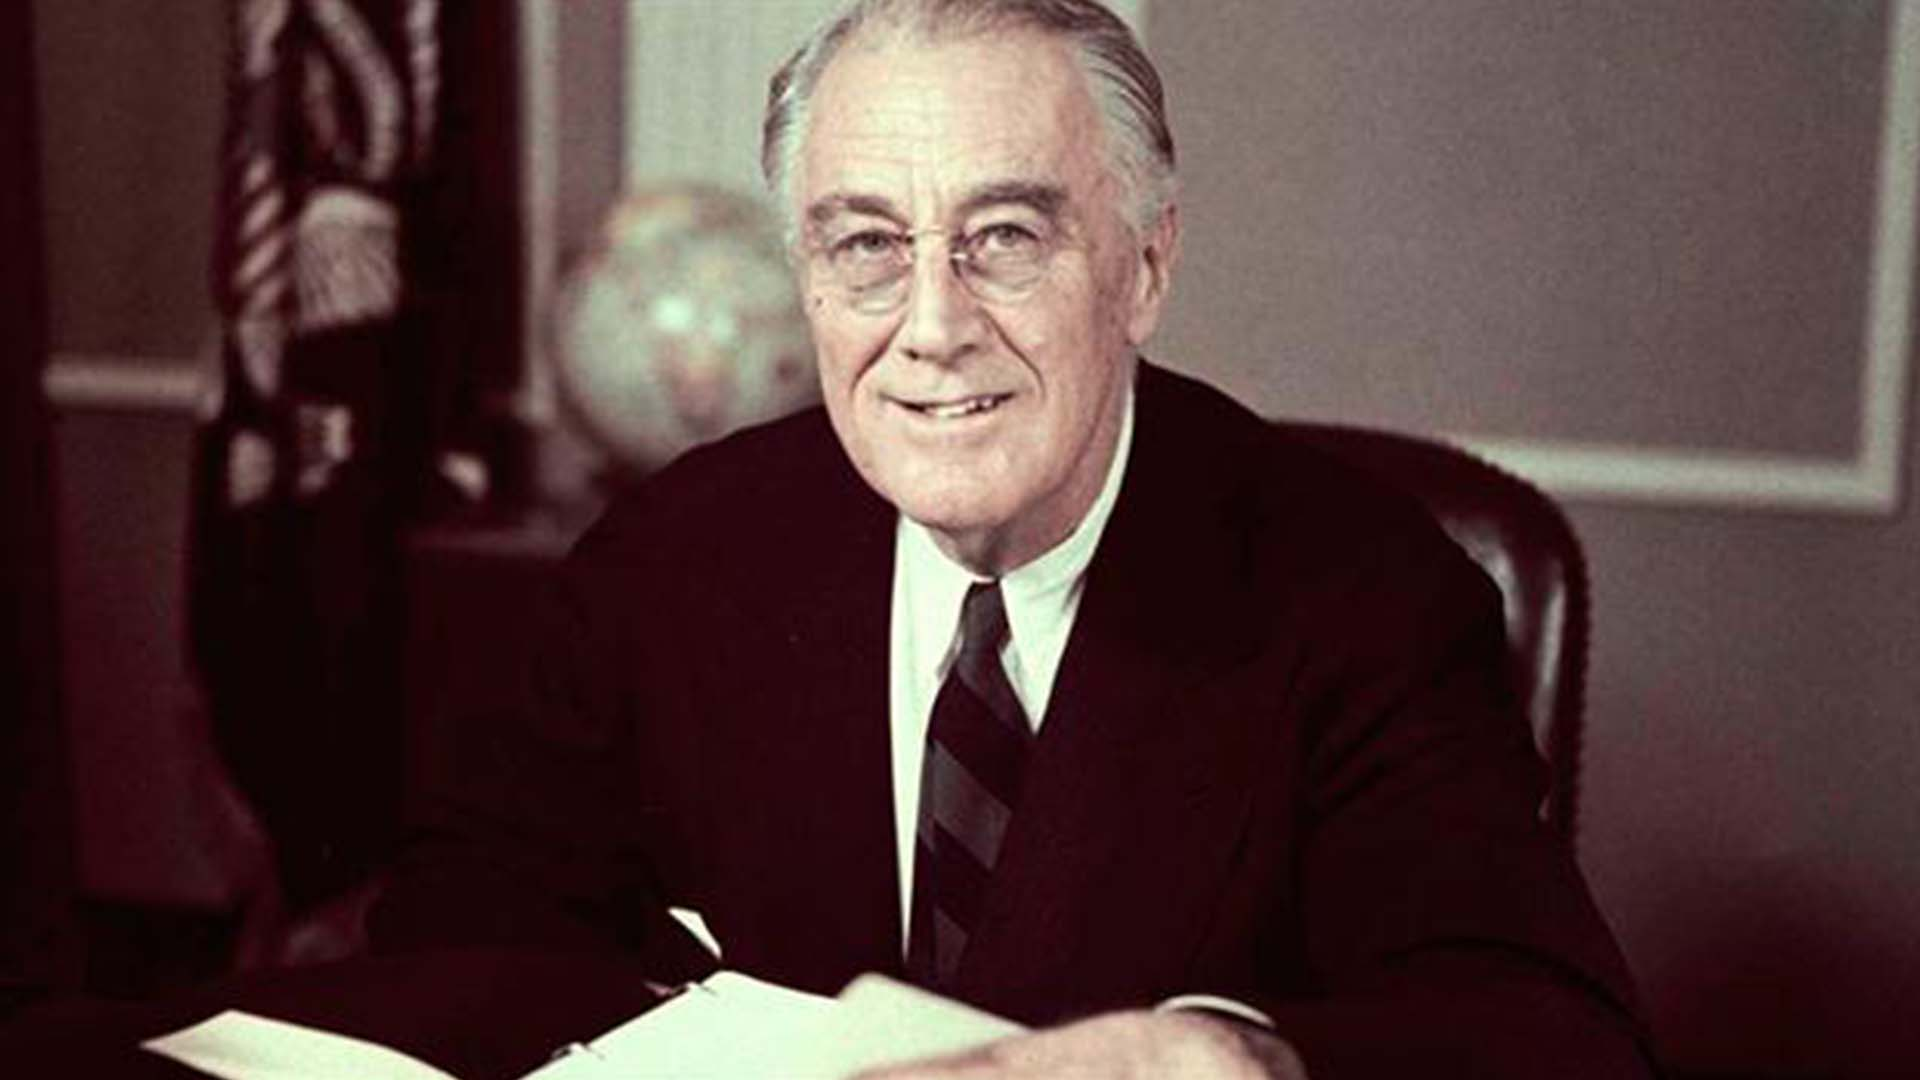 the contribution of franklin d roosevelt in america America's status as a global power can be traced to world war ii and president franklin d roosevelt's tactics as a wartime leader, says michael fullilove, executive director of the lowy institute for international policy in sydney, australia.